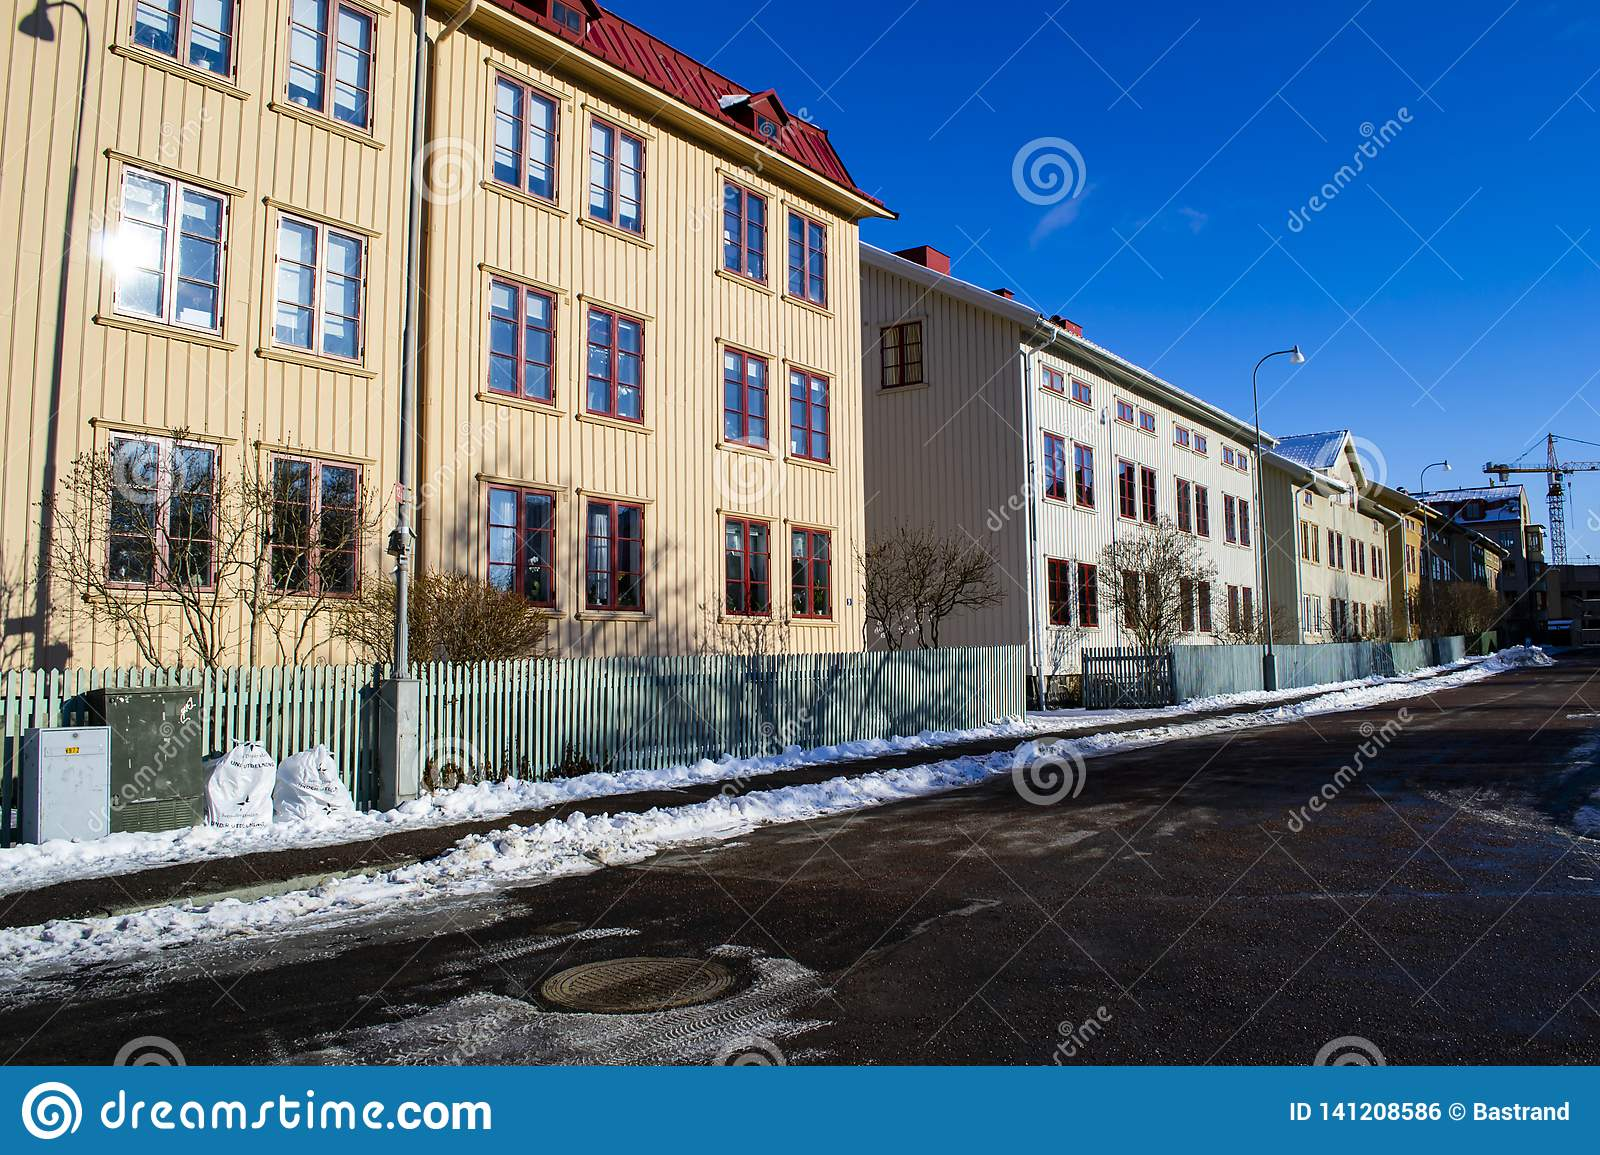 A picturesque street with old wooden houses in Sweden.